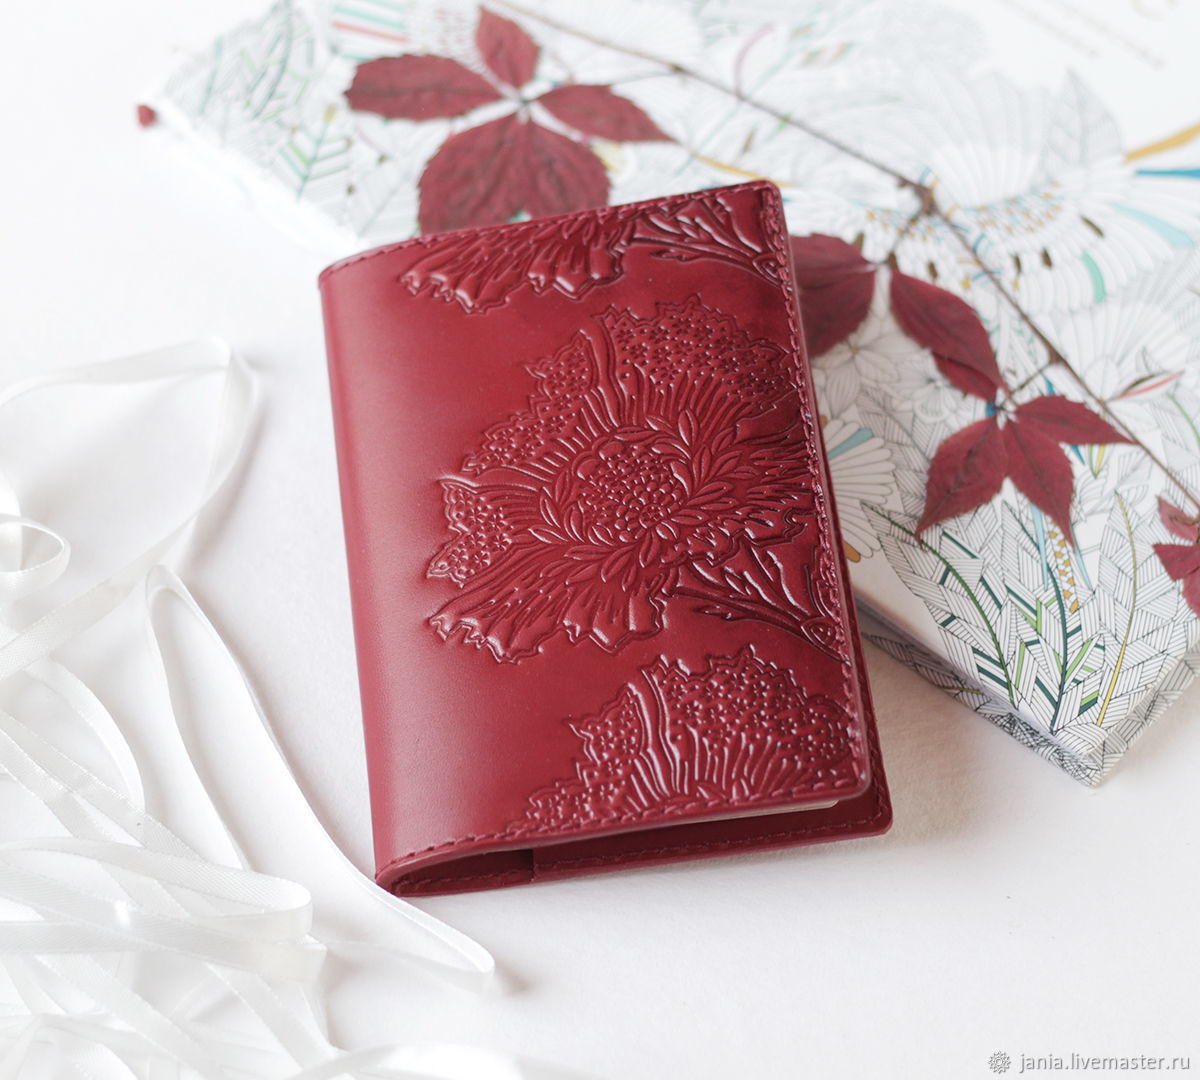 de5f3c678448 Red Berry Leather Passport Cover, Personalized Passport Wallet – shop  online on Livemaster with shipping - FIBWLCOM | Ivanovo